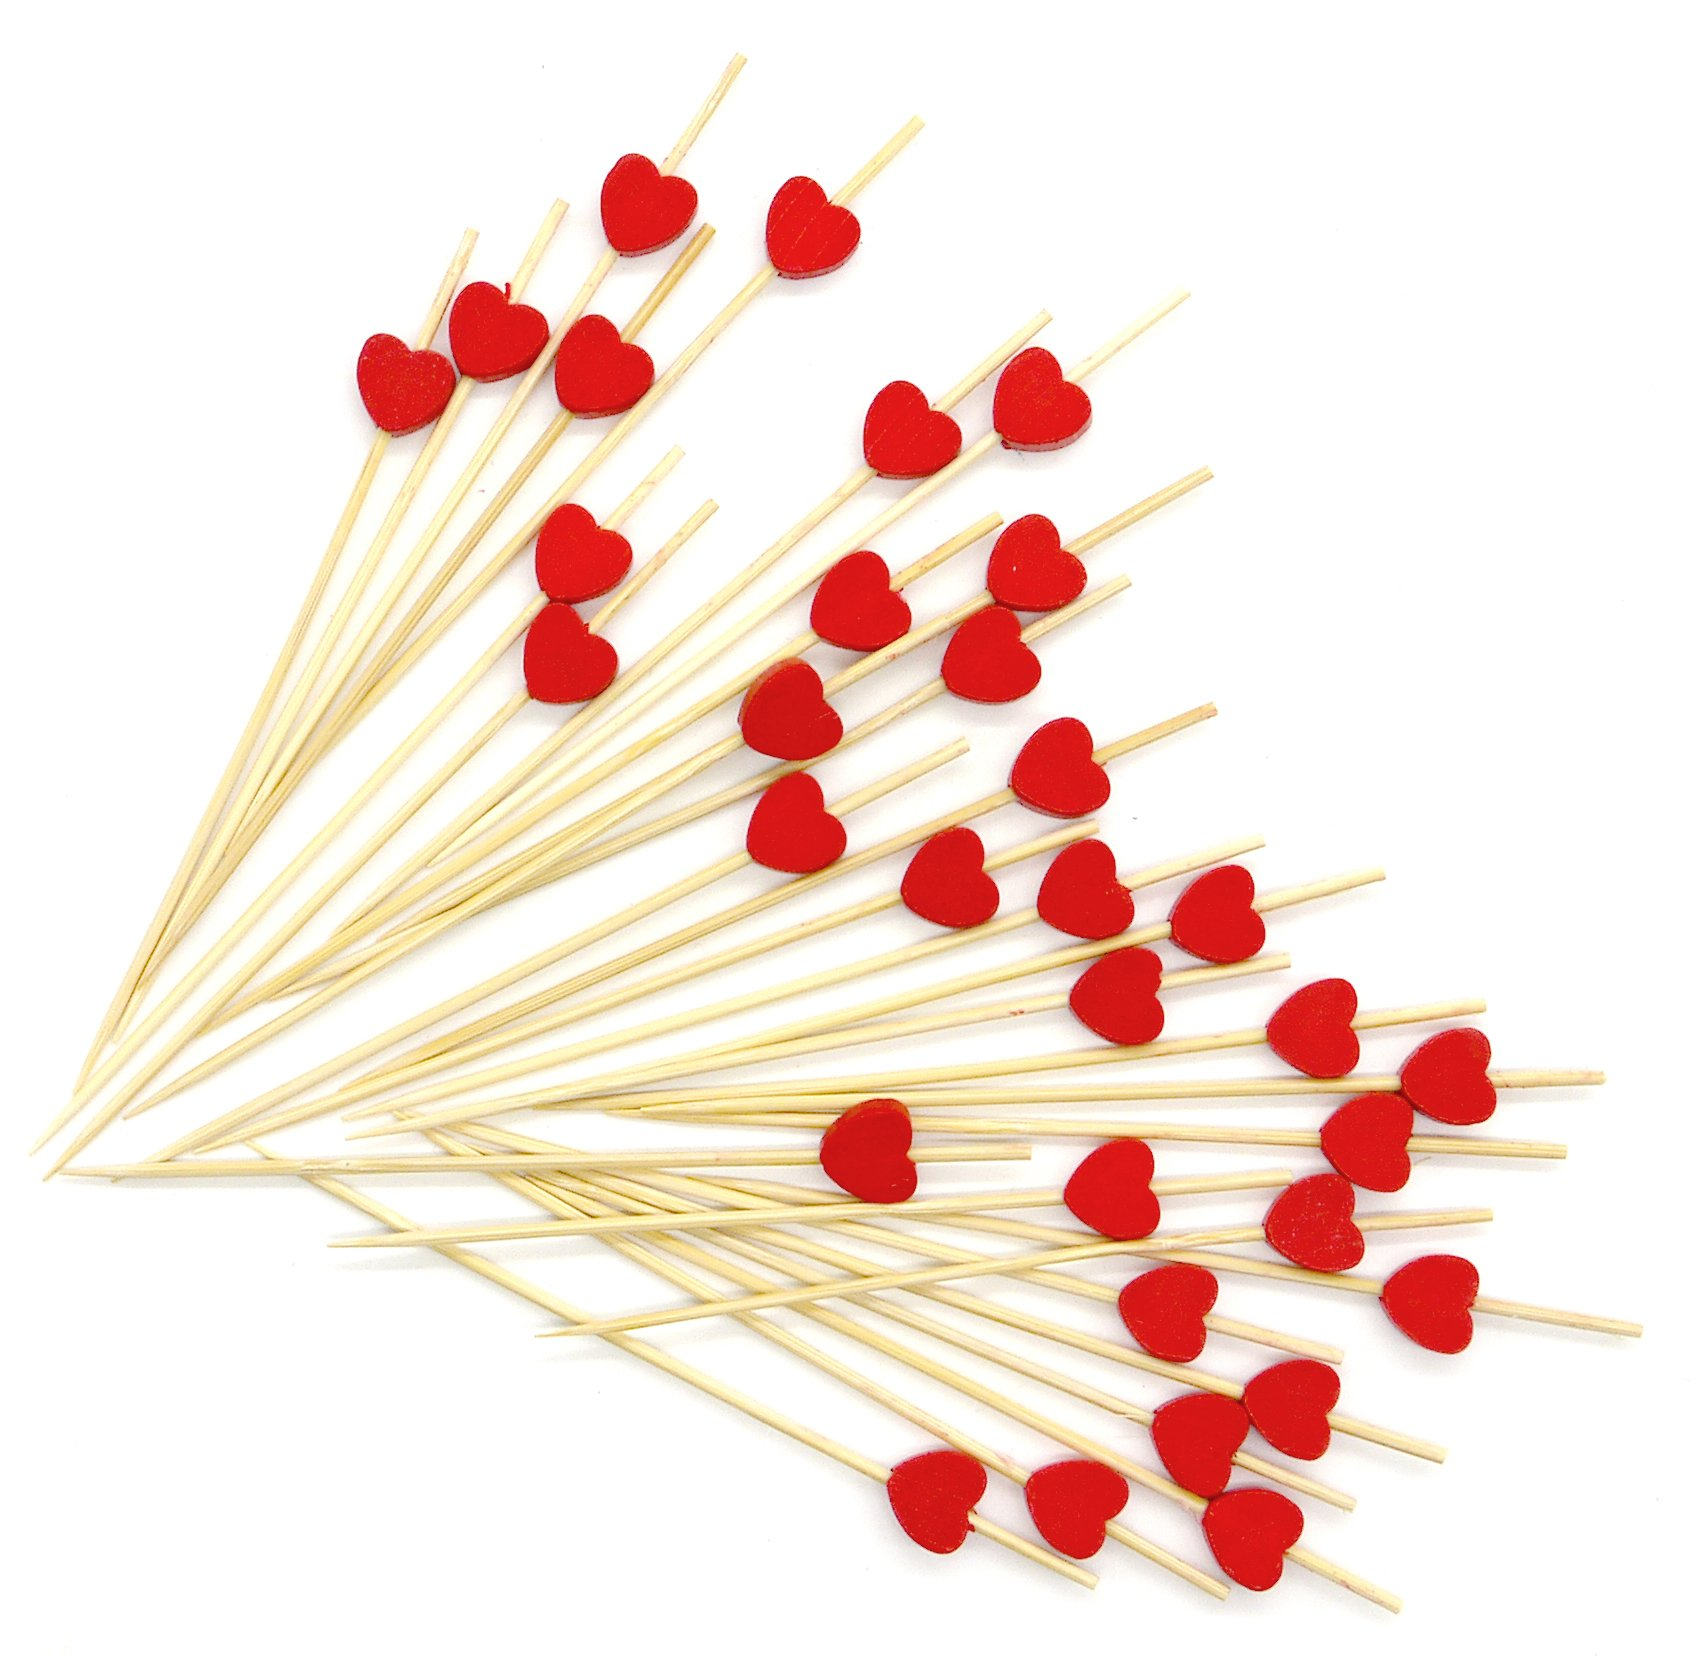 PuTwo Cocktail Toothpicks 100 Counts Cocktail Picks Handmade Natural Bamboo Cocktail Sticks Eco-Friendly Appetizer Skewers for Cocktail Appetizers Fruits Dessert - Red Hearts by PuTwo